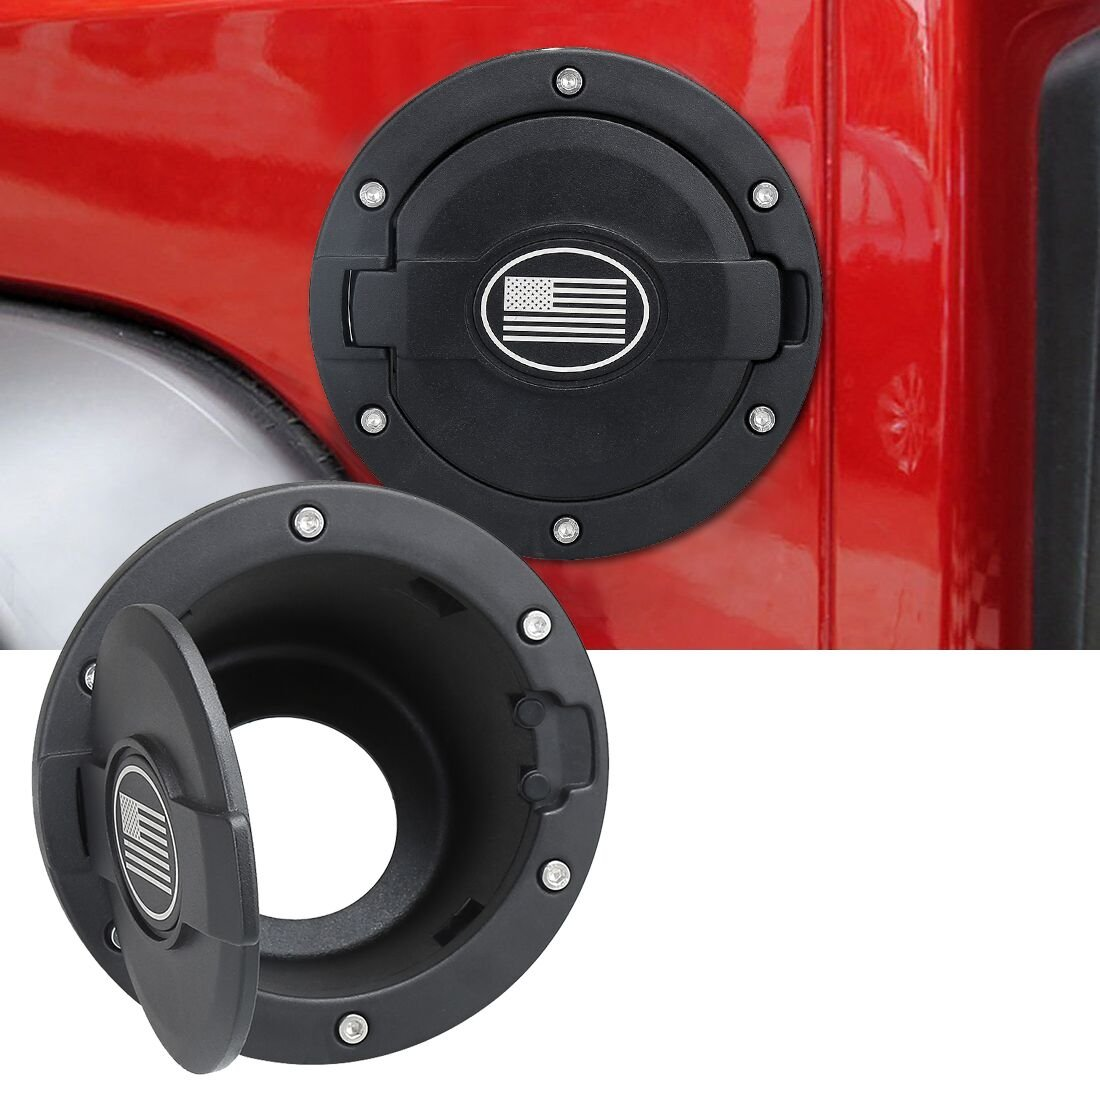 Gas Tank Cap Fuel Filler Door Cover for 2007-2017 Jeep Wrangler JK /& Unlimited Sport Rubicon Sahara 4 Door,2 Door